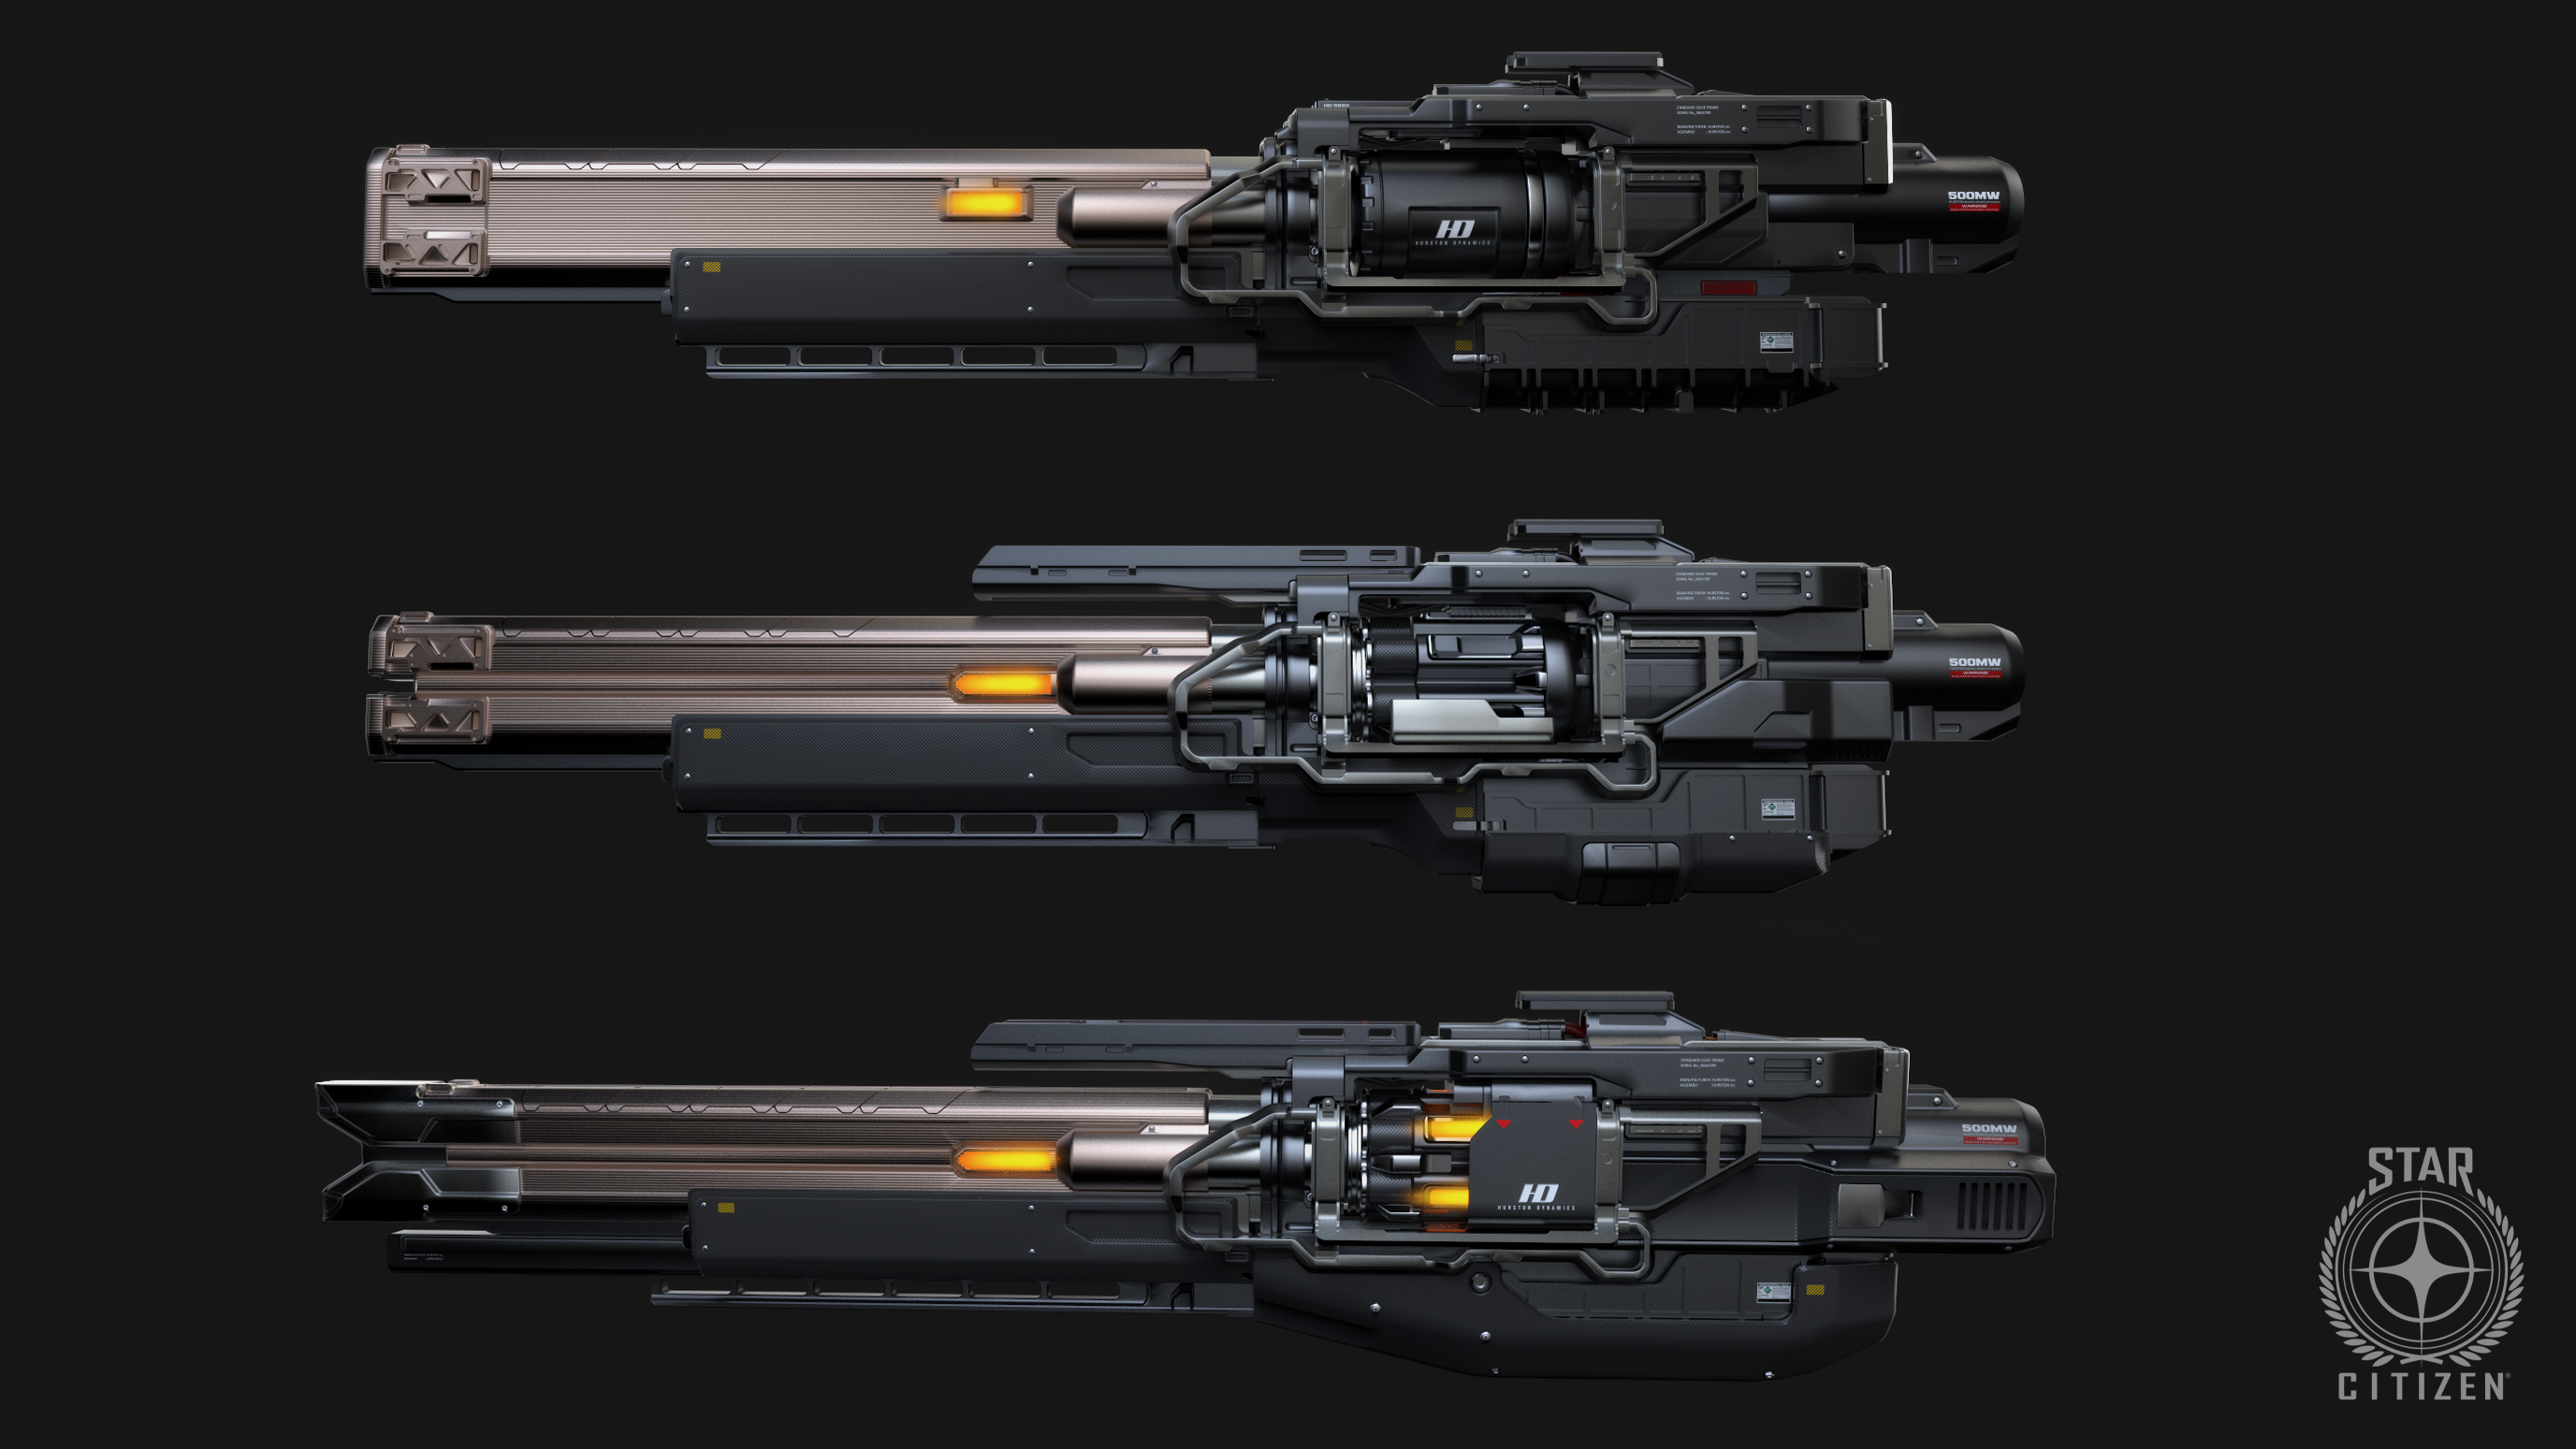 StarCitizen_SneakPeek_Weapons.png